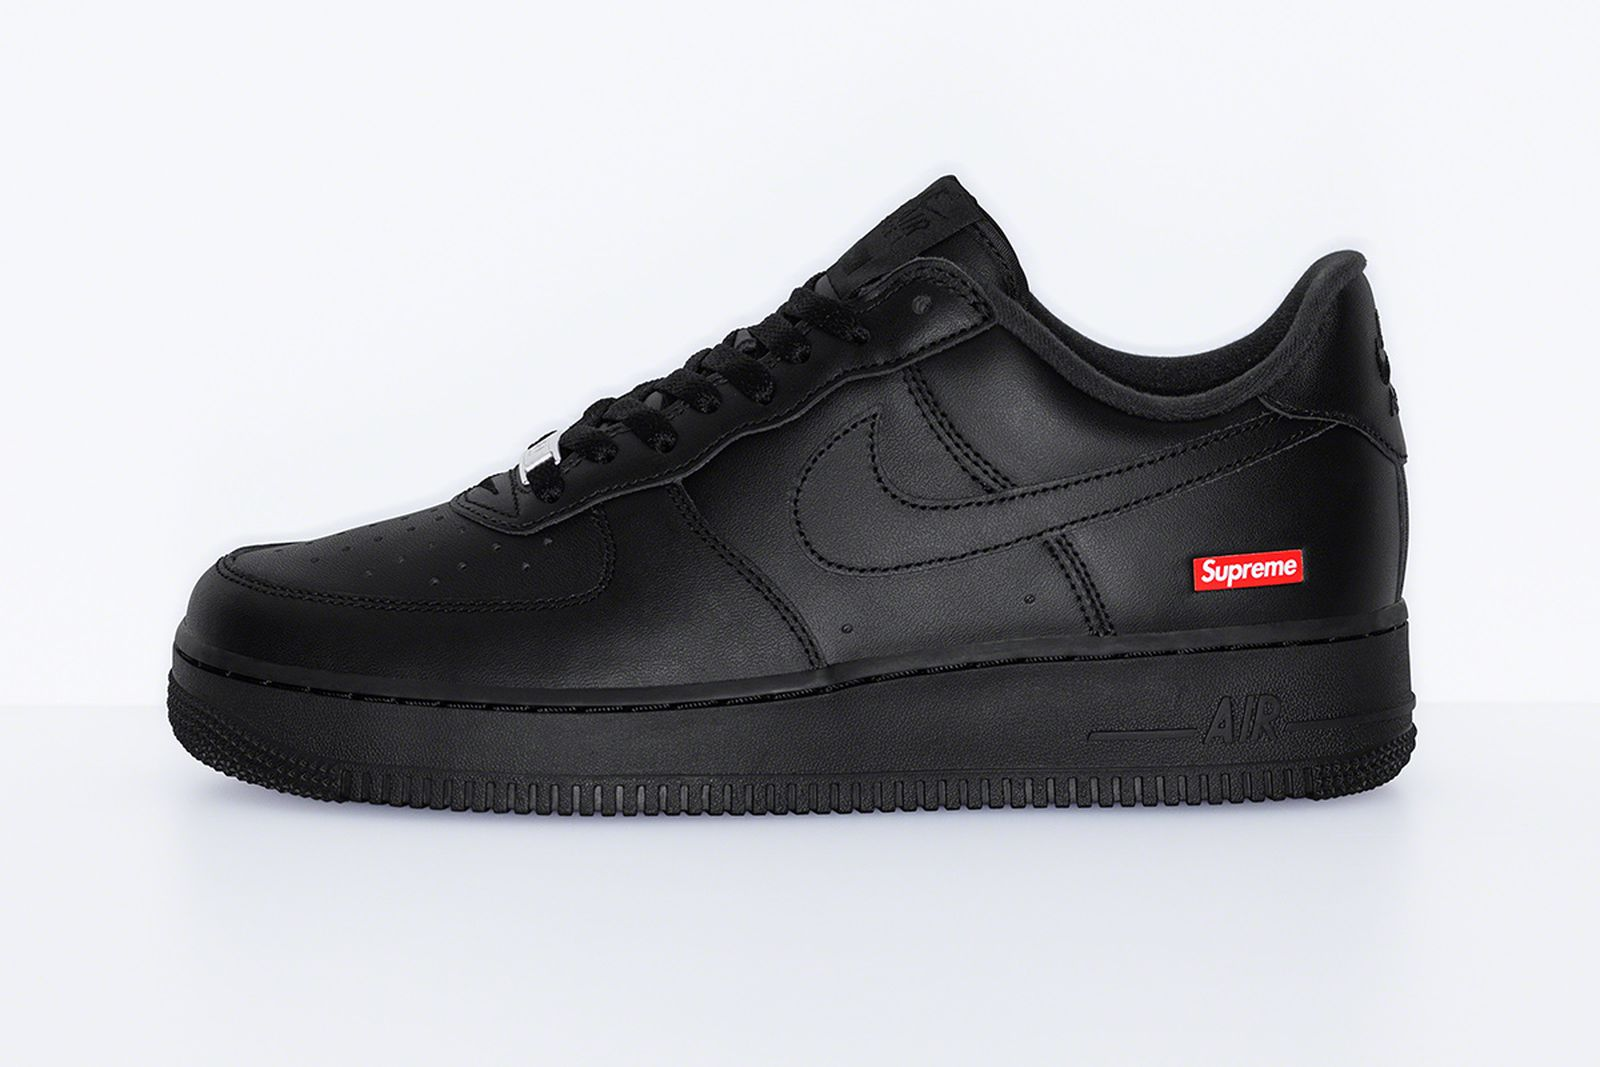 Supreme x Nike Air Force 1 Low Will Restock, Don't Freak Out